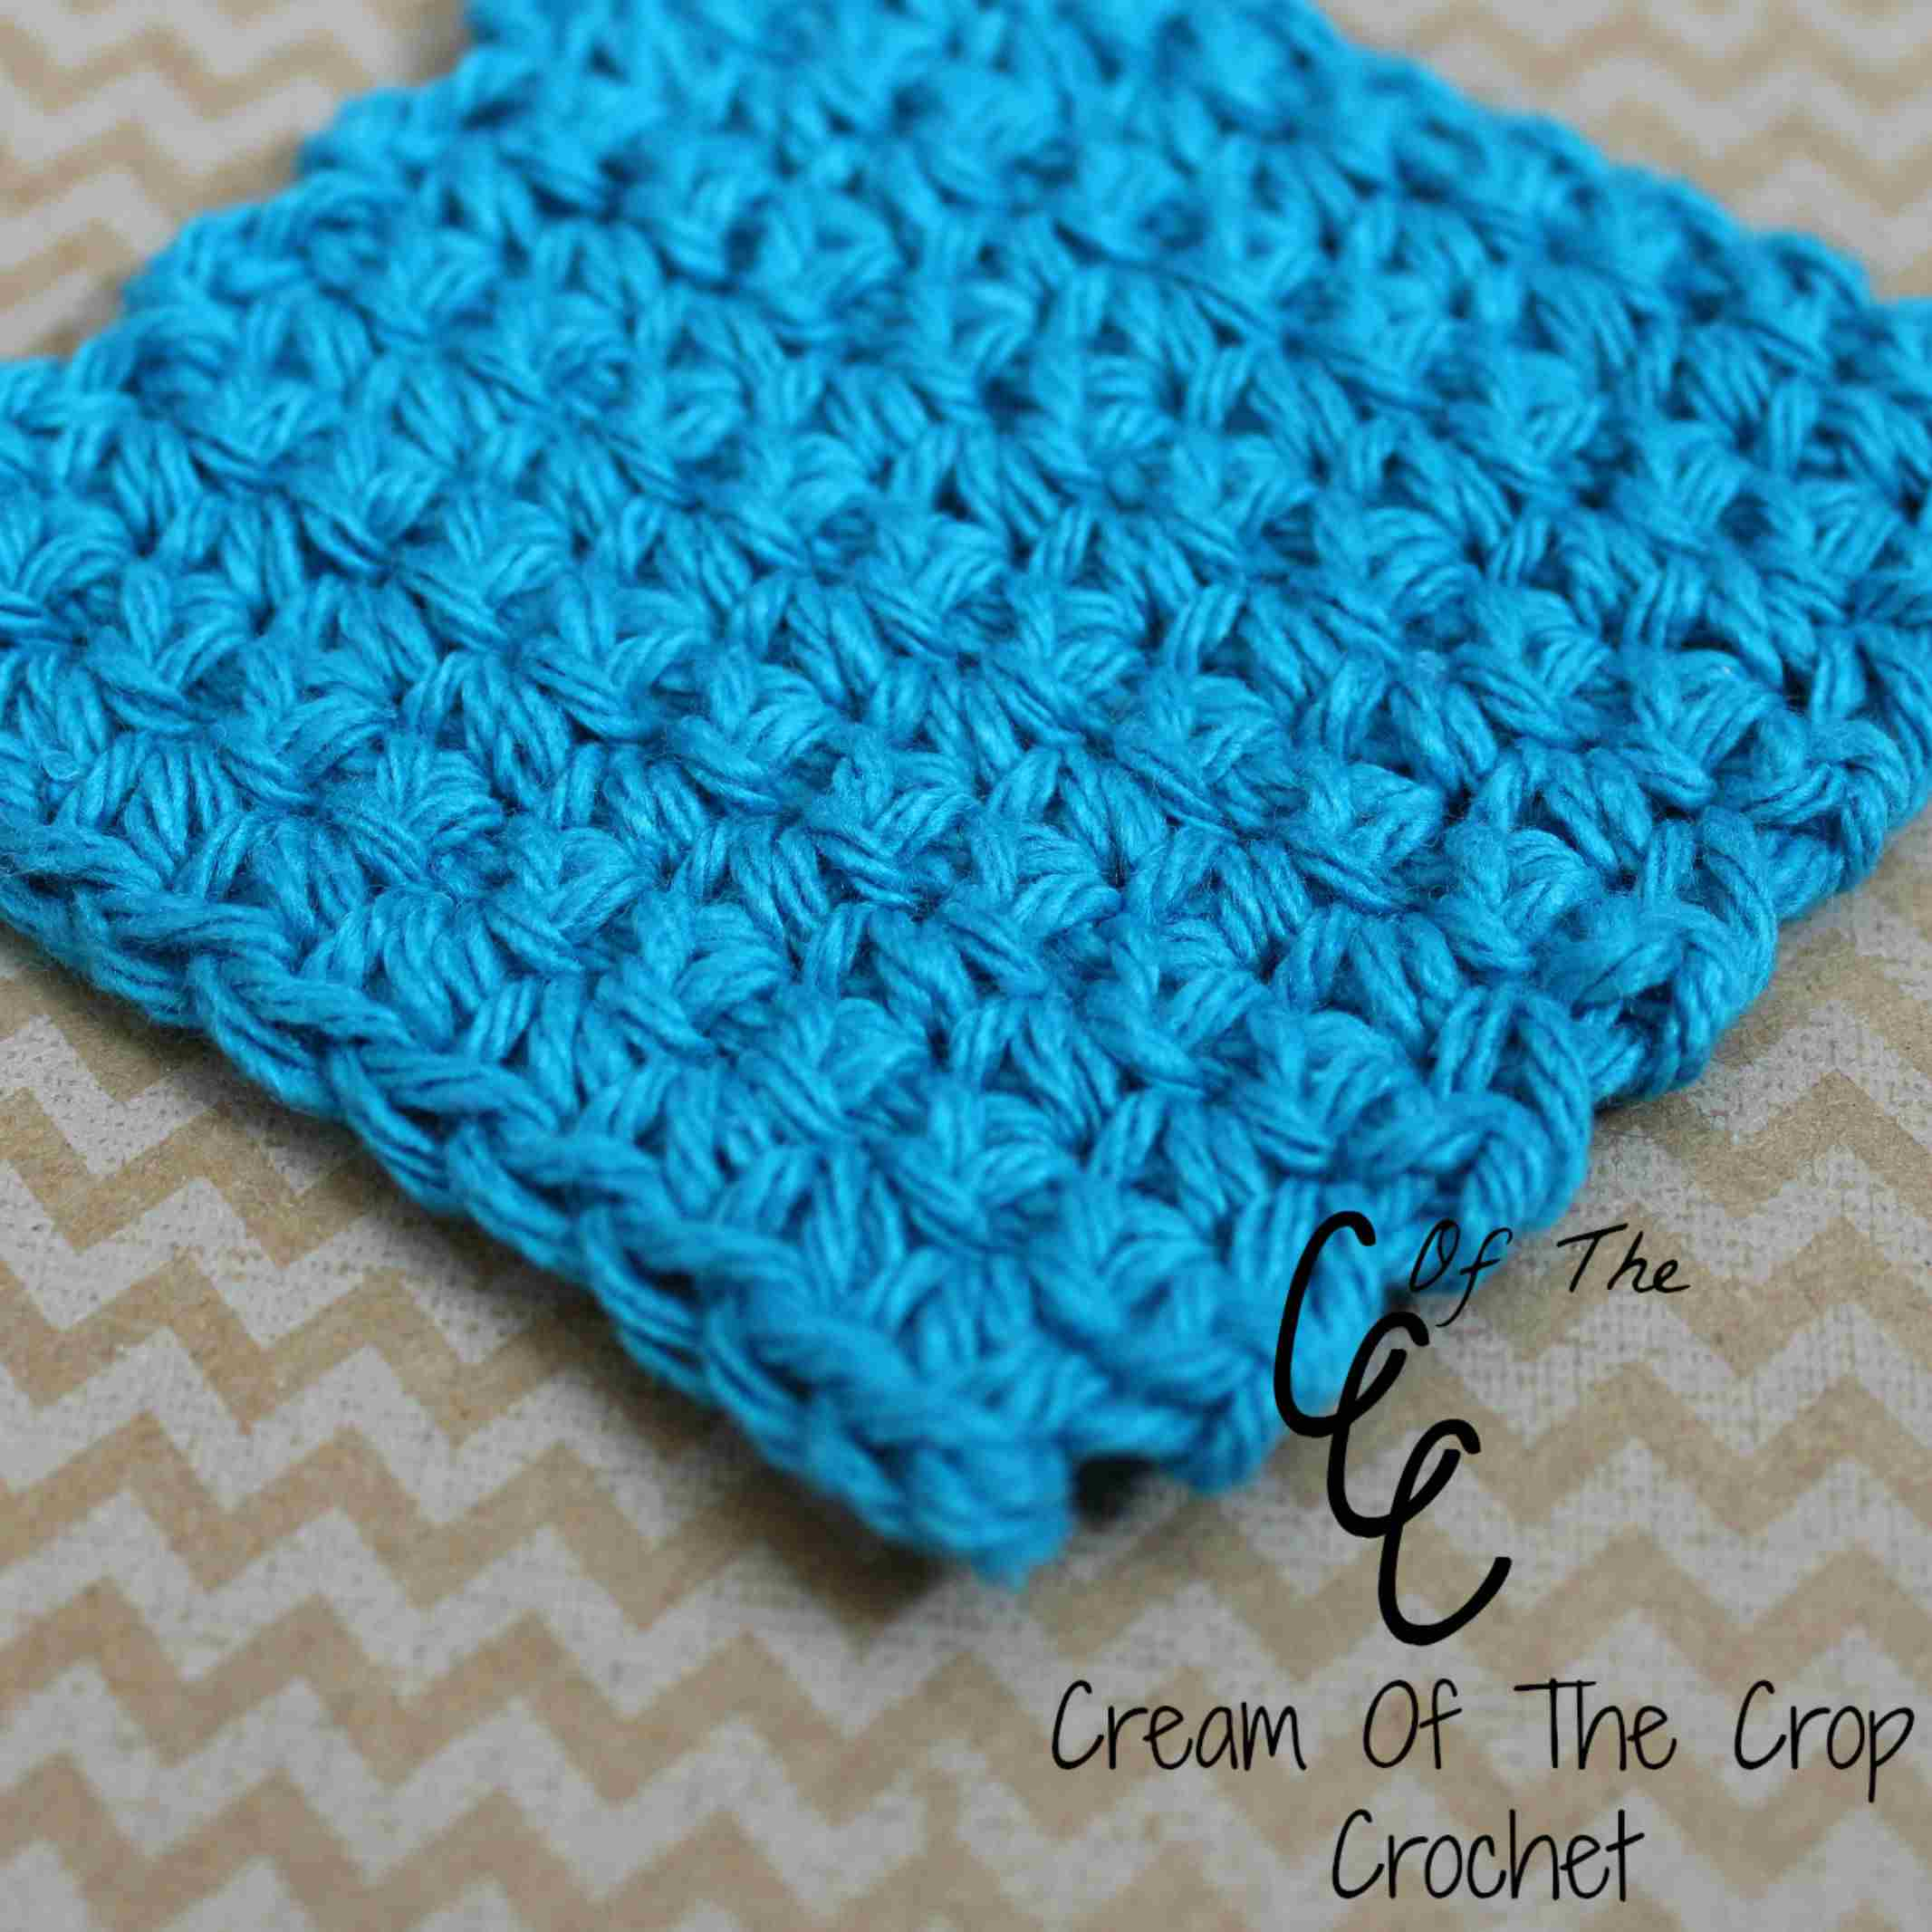 20 Crochet Patterns - Easy and Hard - That Only Use SC